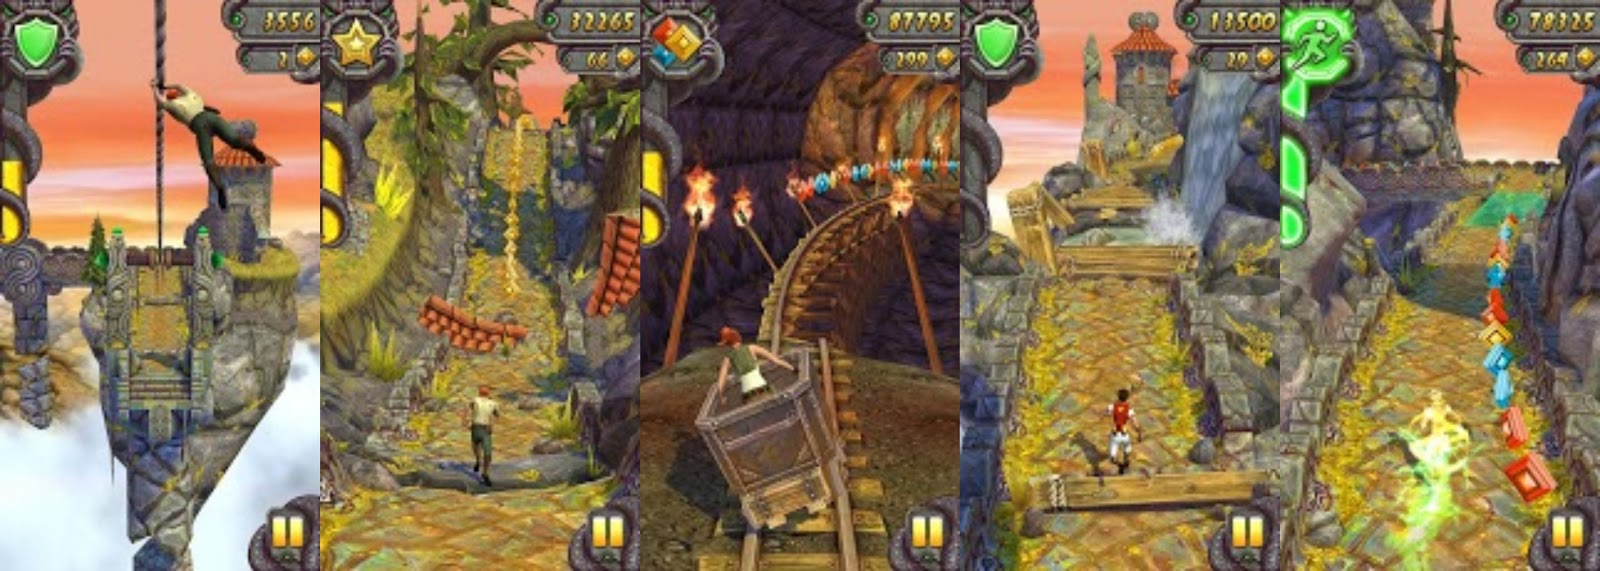 Temple Run 2 v1.0.1.2 Android